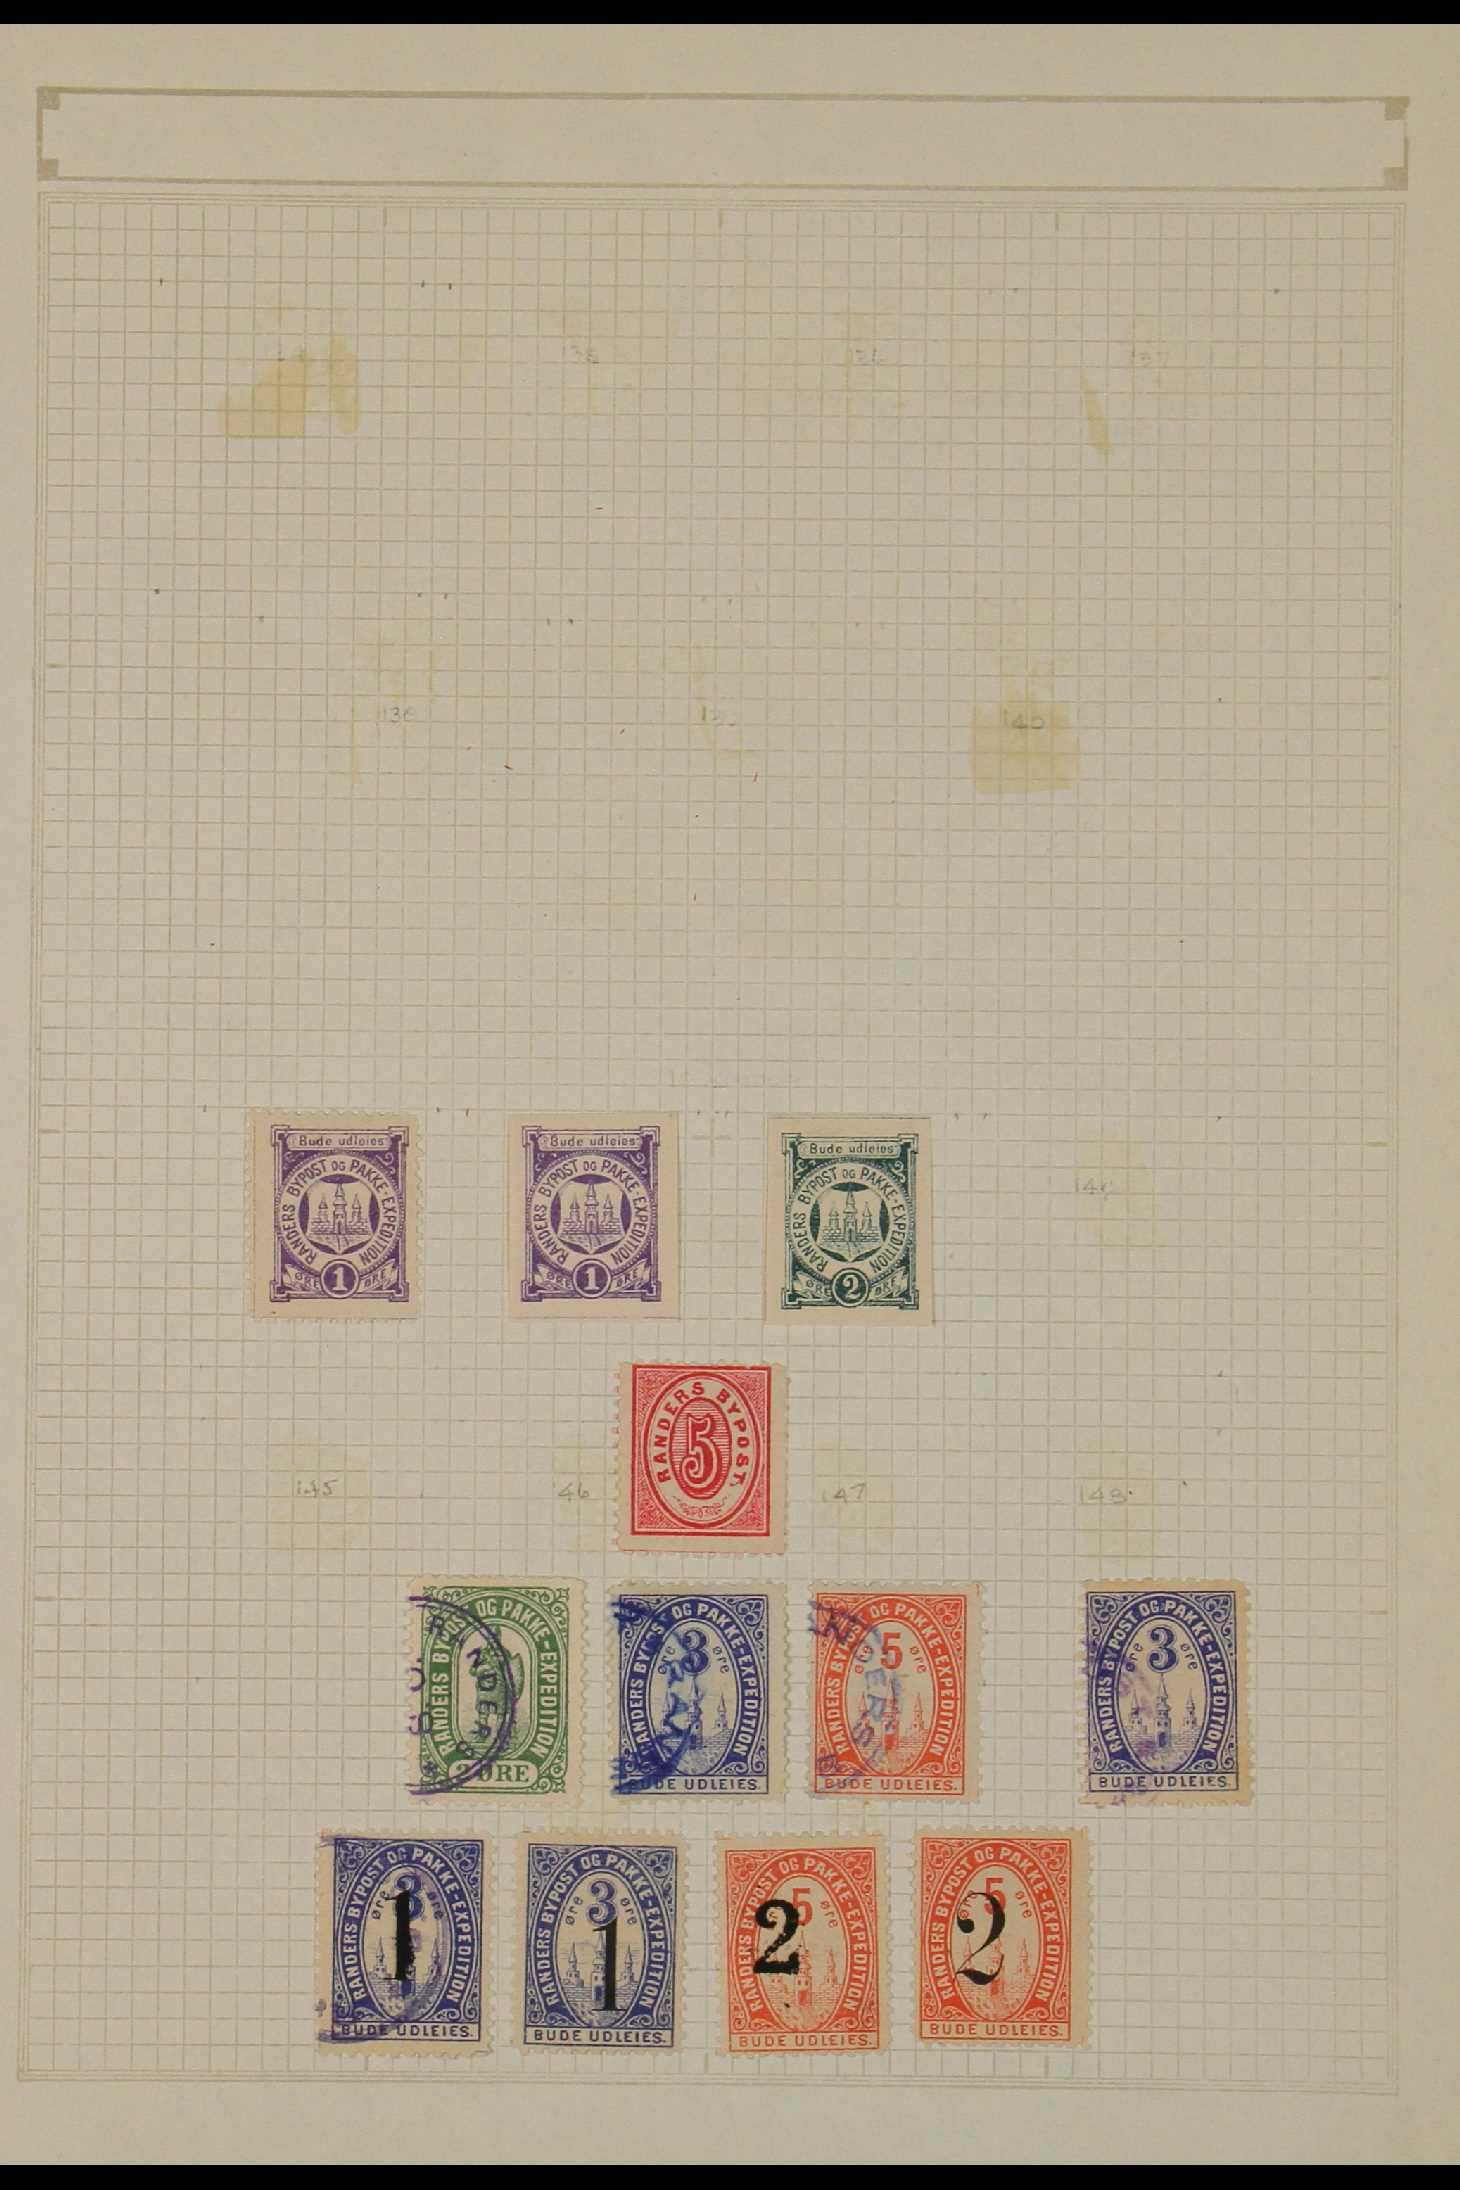 DENMARK LOCAL POST STAMPS - RANDERS 1885-89. MINT & USED ranges incl. inverted surcharges, - Image 2 of 4